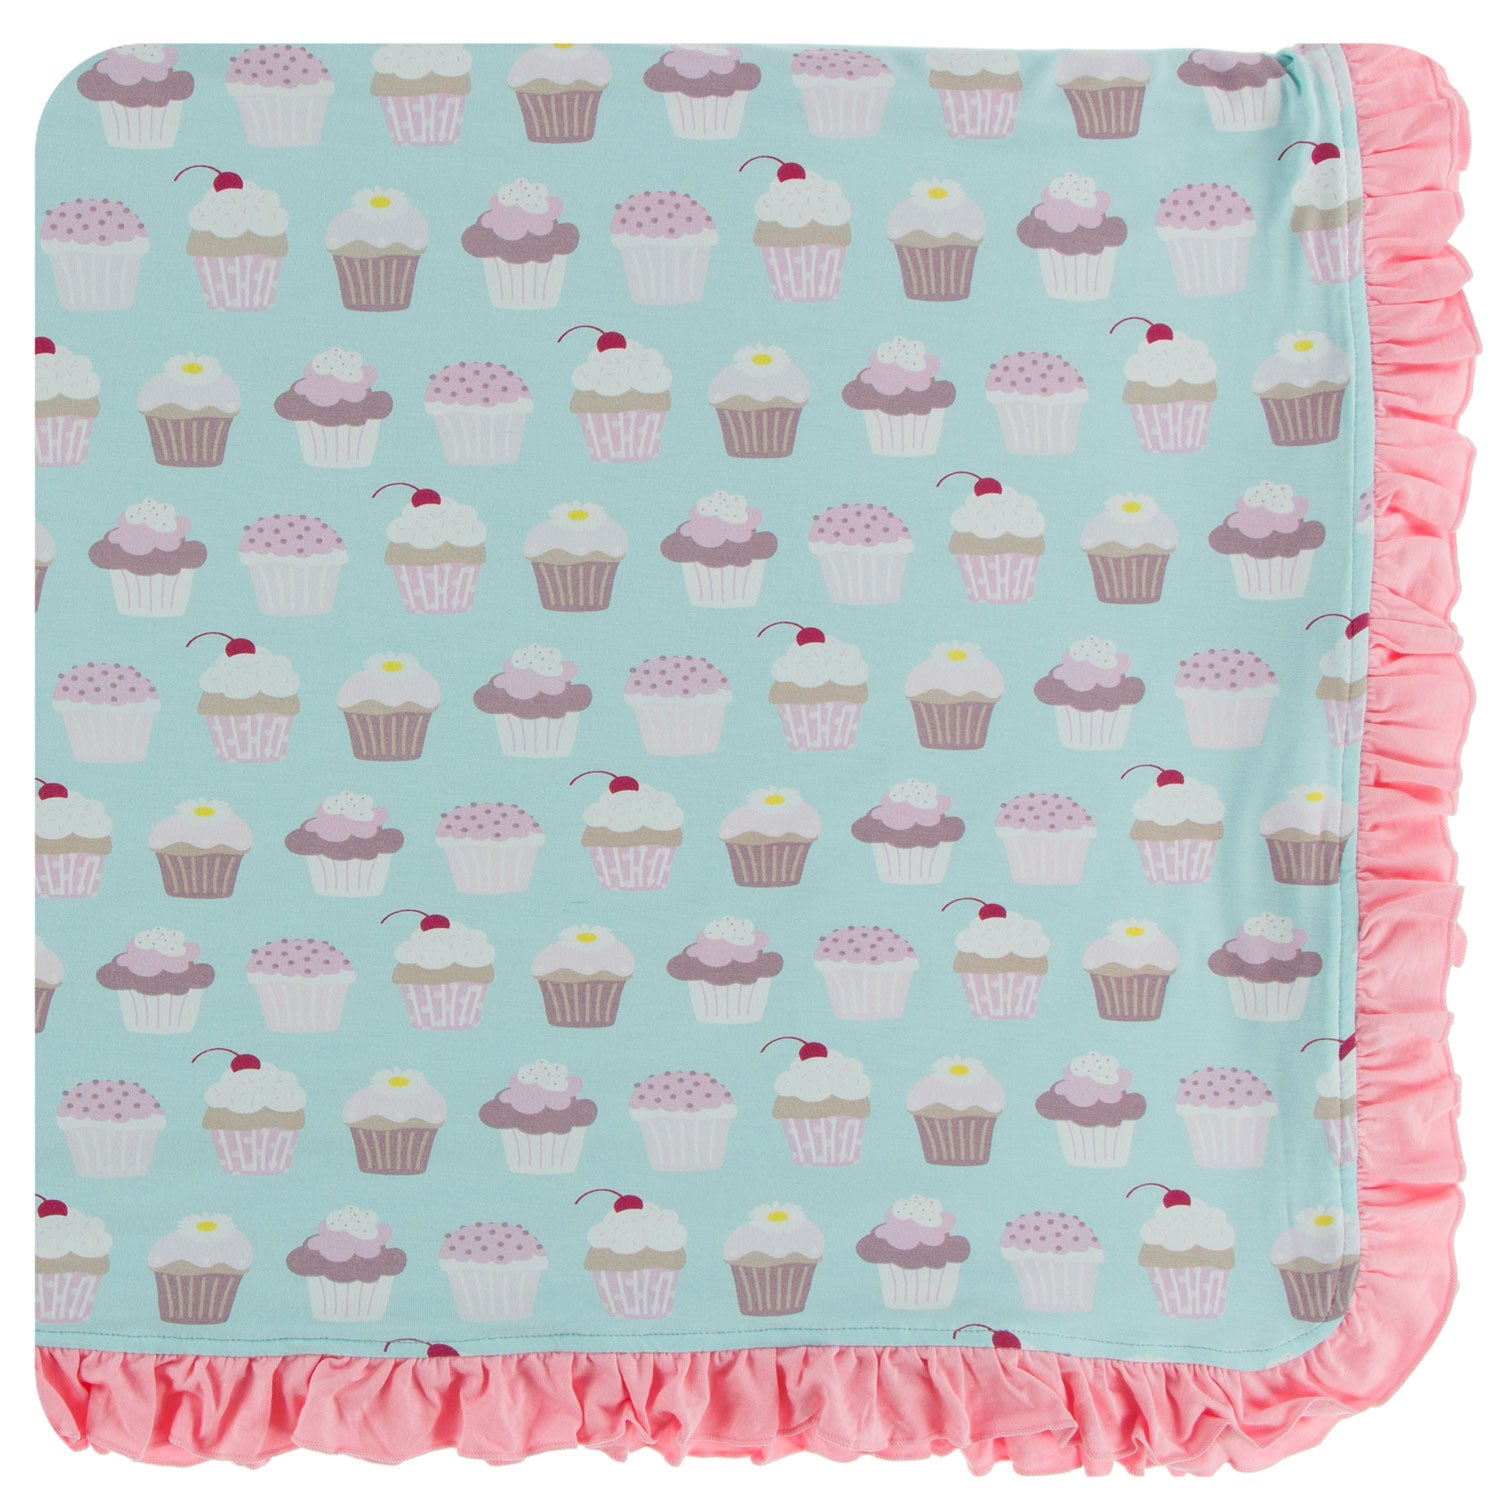 KicKee Pants Ruffle Toddler Blanket - Summer Sky Cupcakes